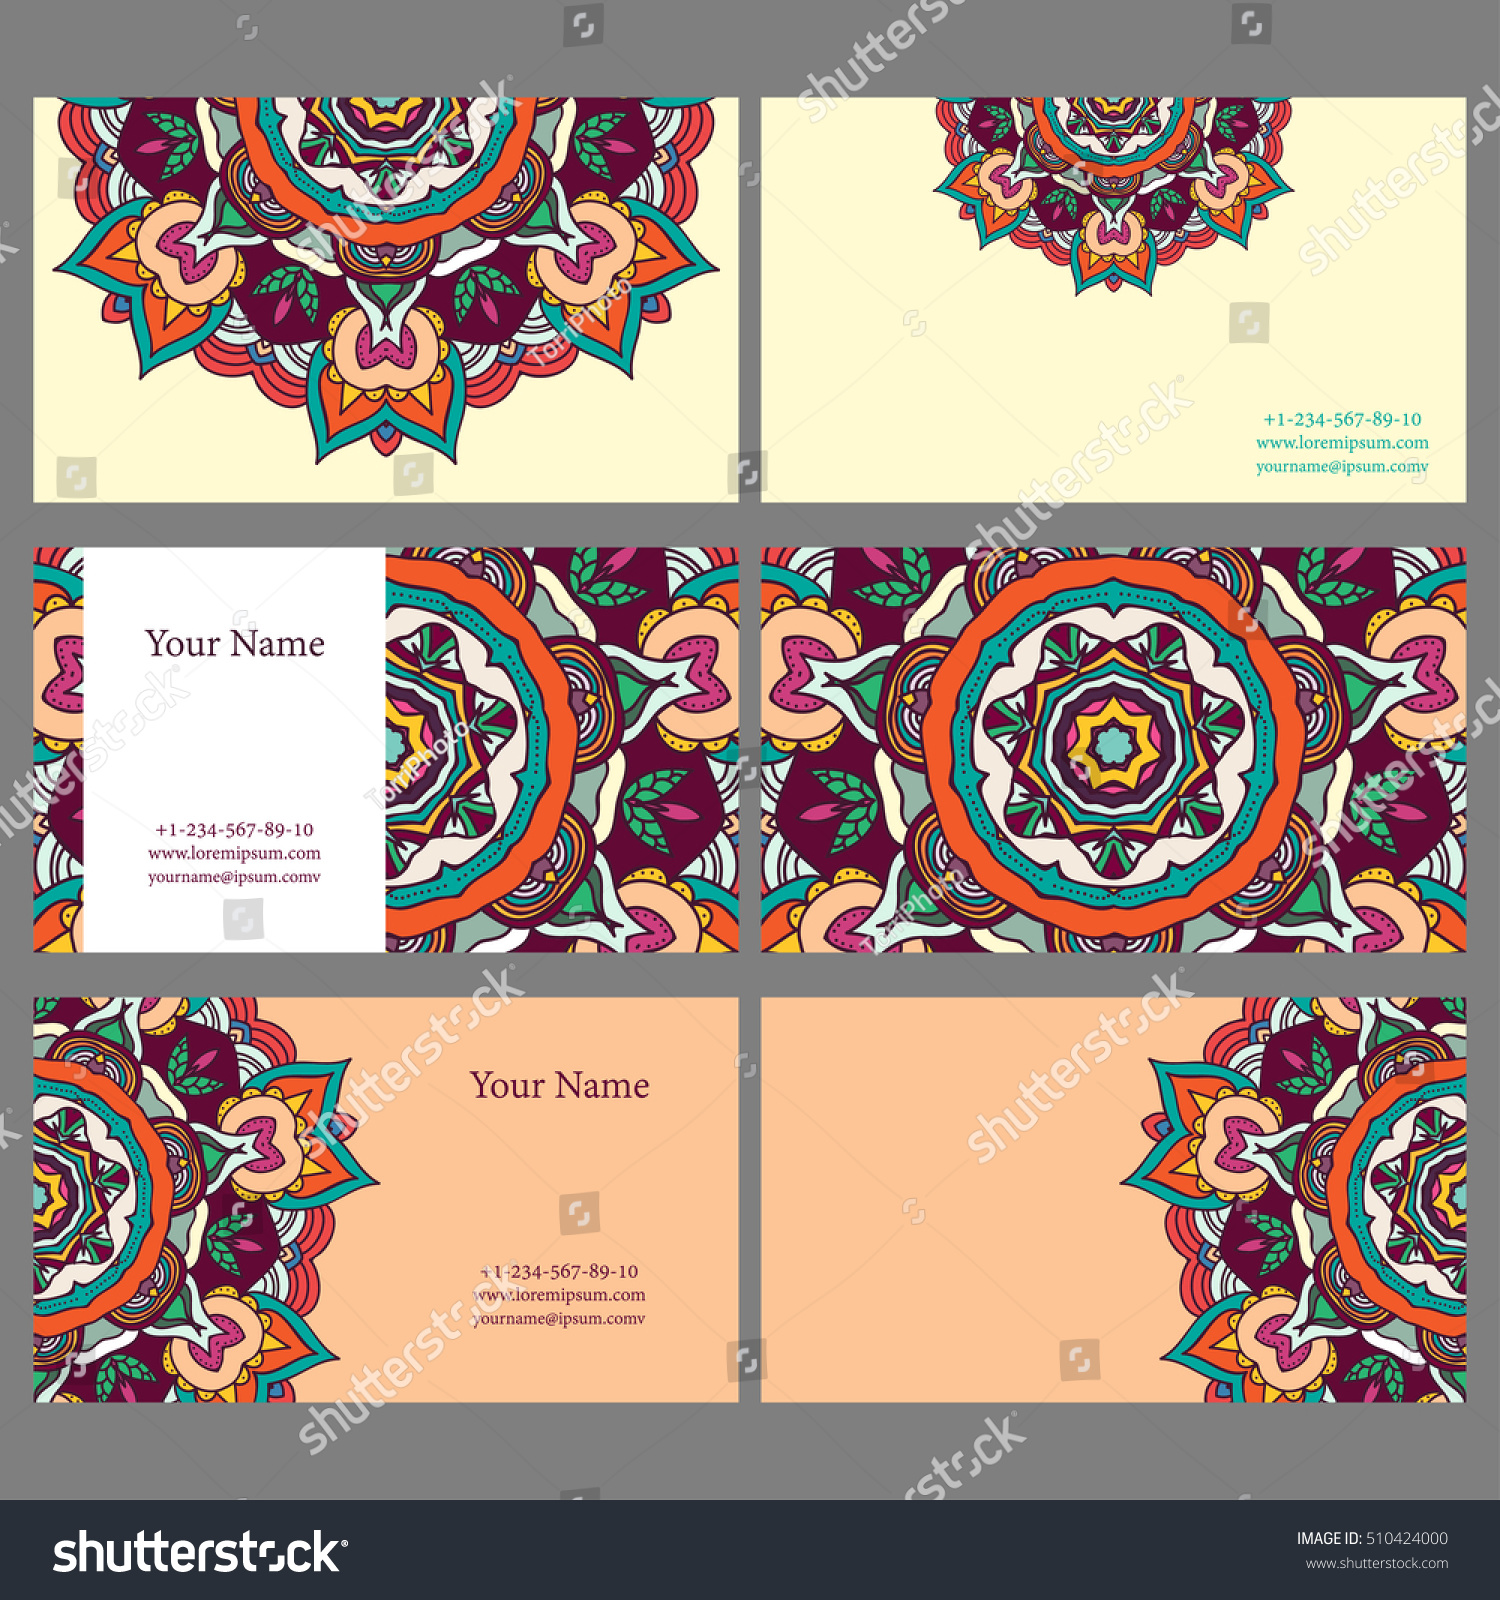 https://www.shutterstock.com/pic-510424000/stock-vector-set-of-colorful-business-cards-with-abstract-mandala-design-vector-illustration-eps-8.html